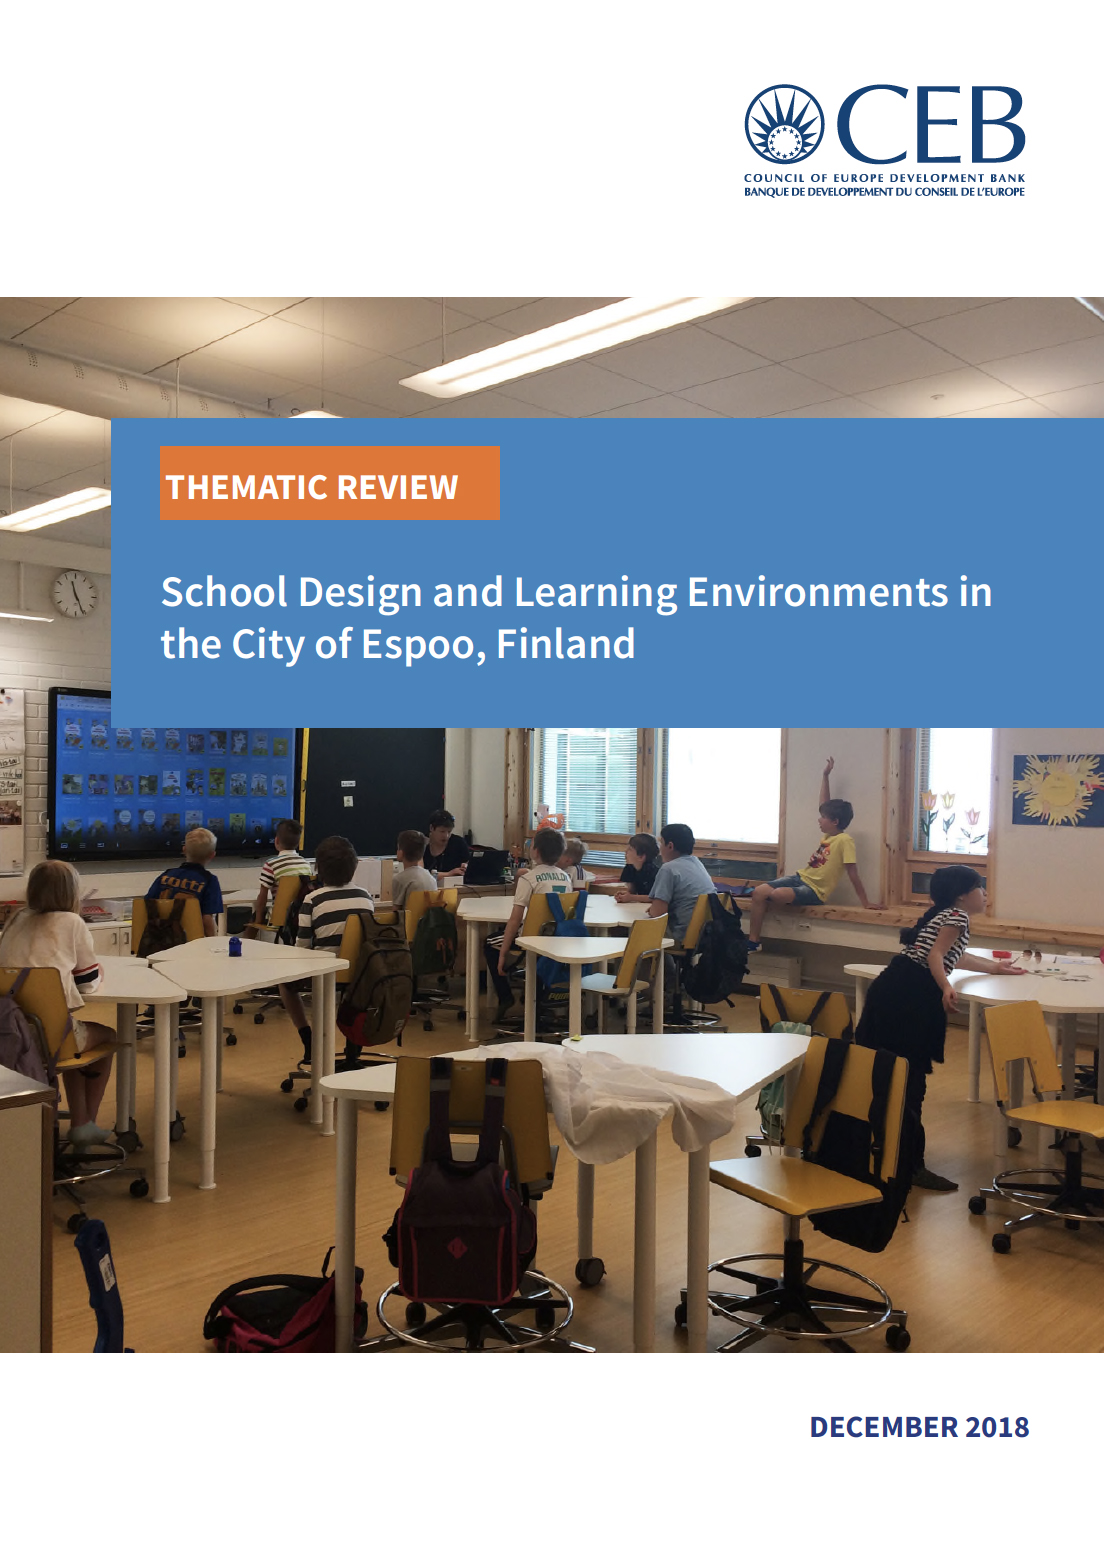 a. School Design and Learning Environments